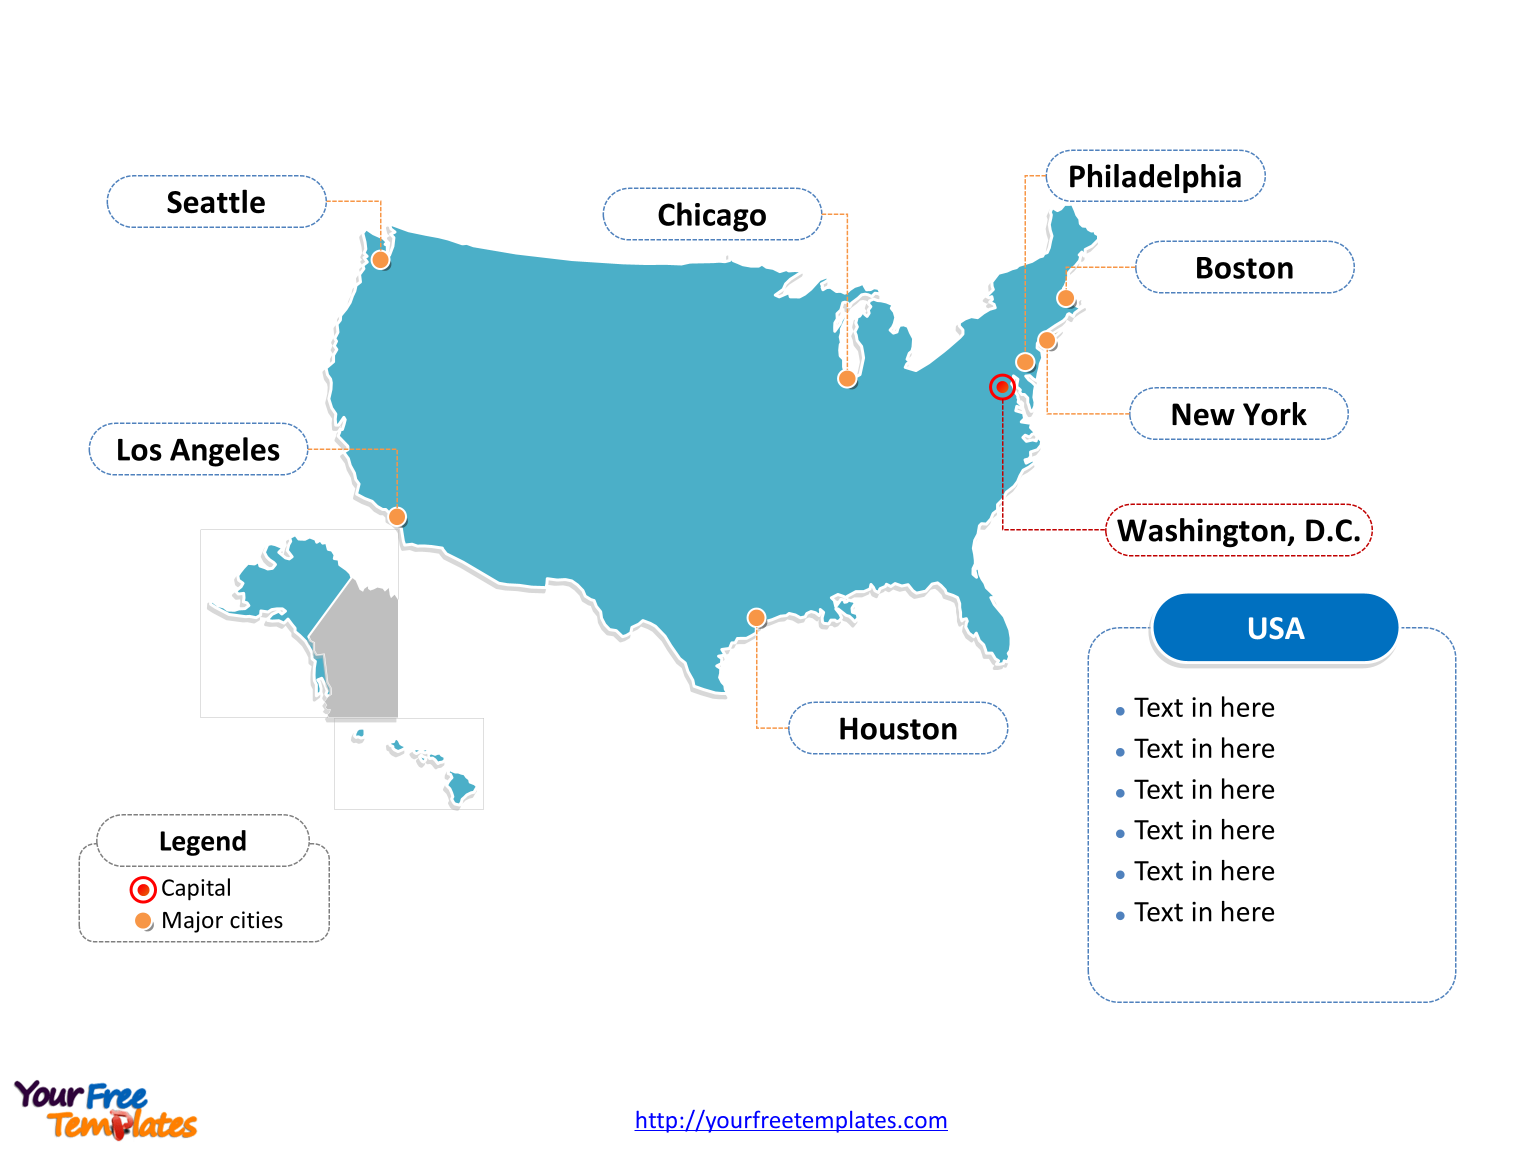 Free USA PowerPoint Map Free PowerPoint Templates - Us map massachusetts highlighted